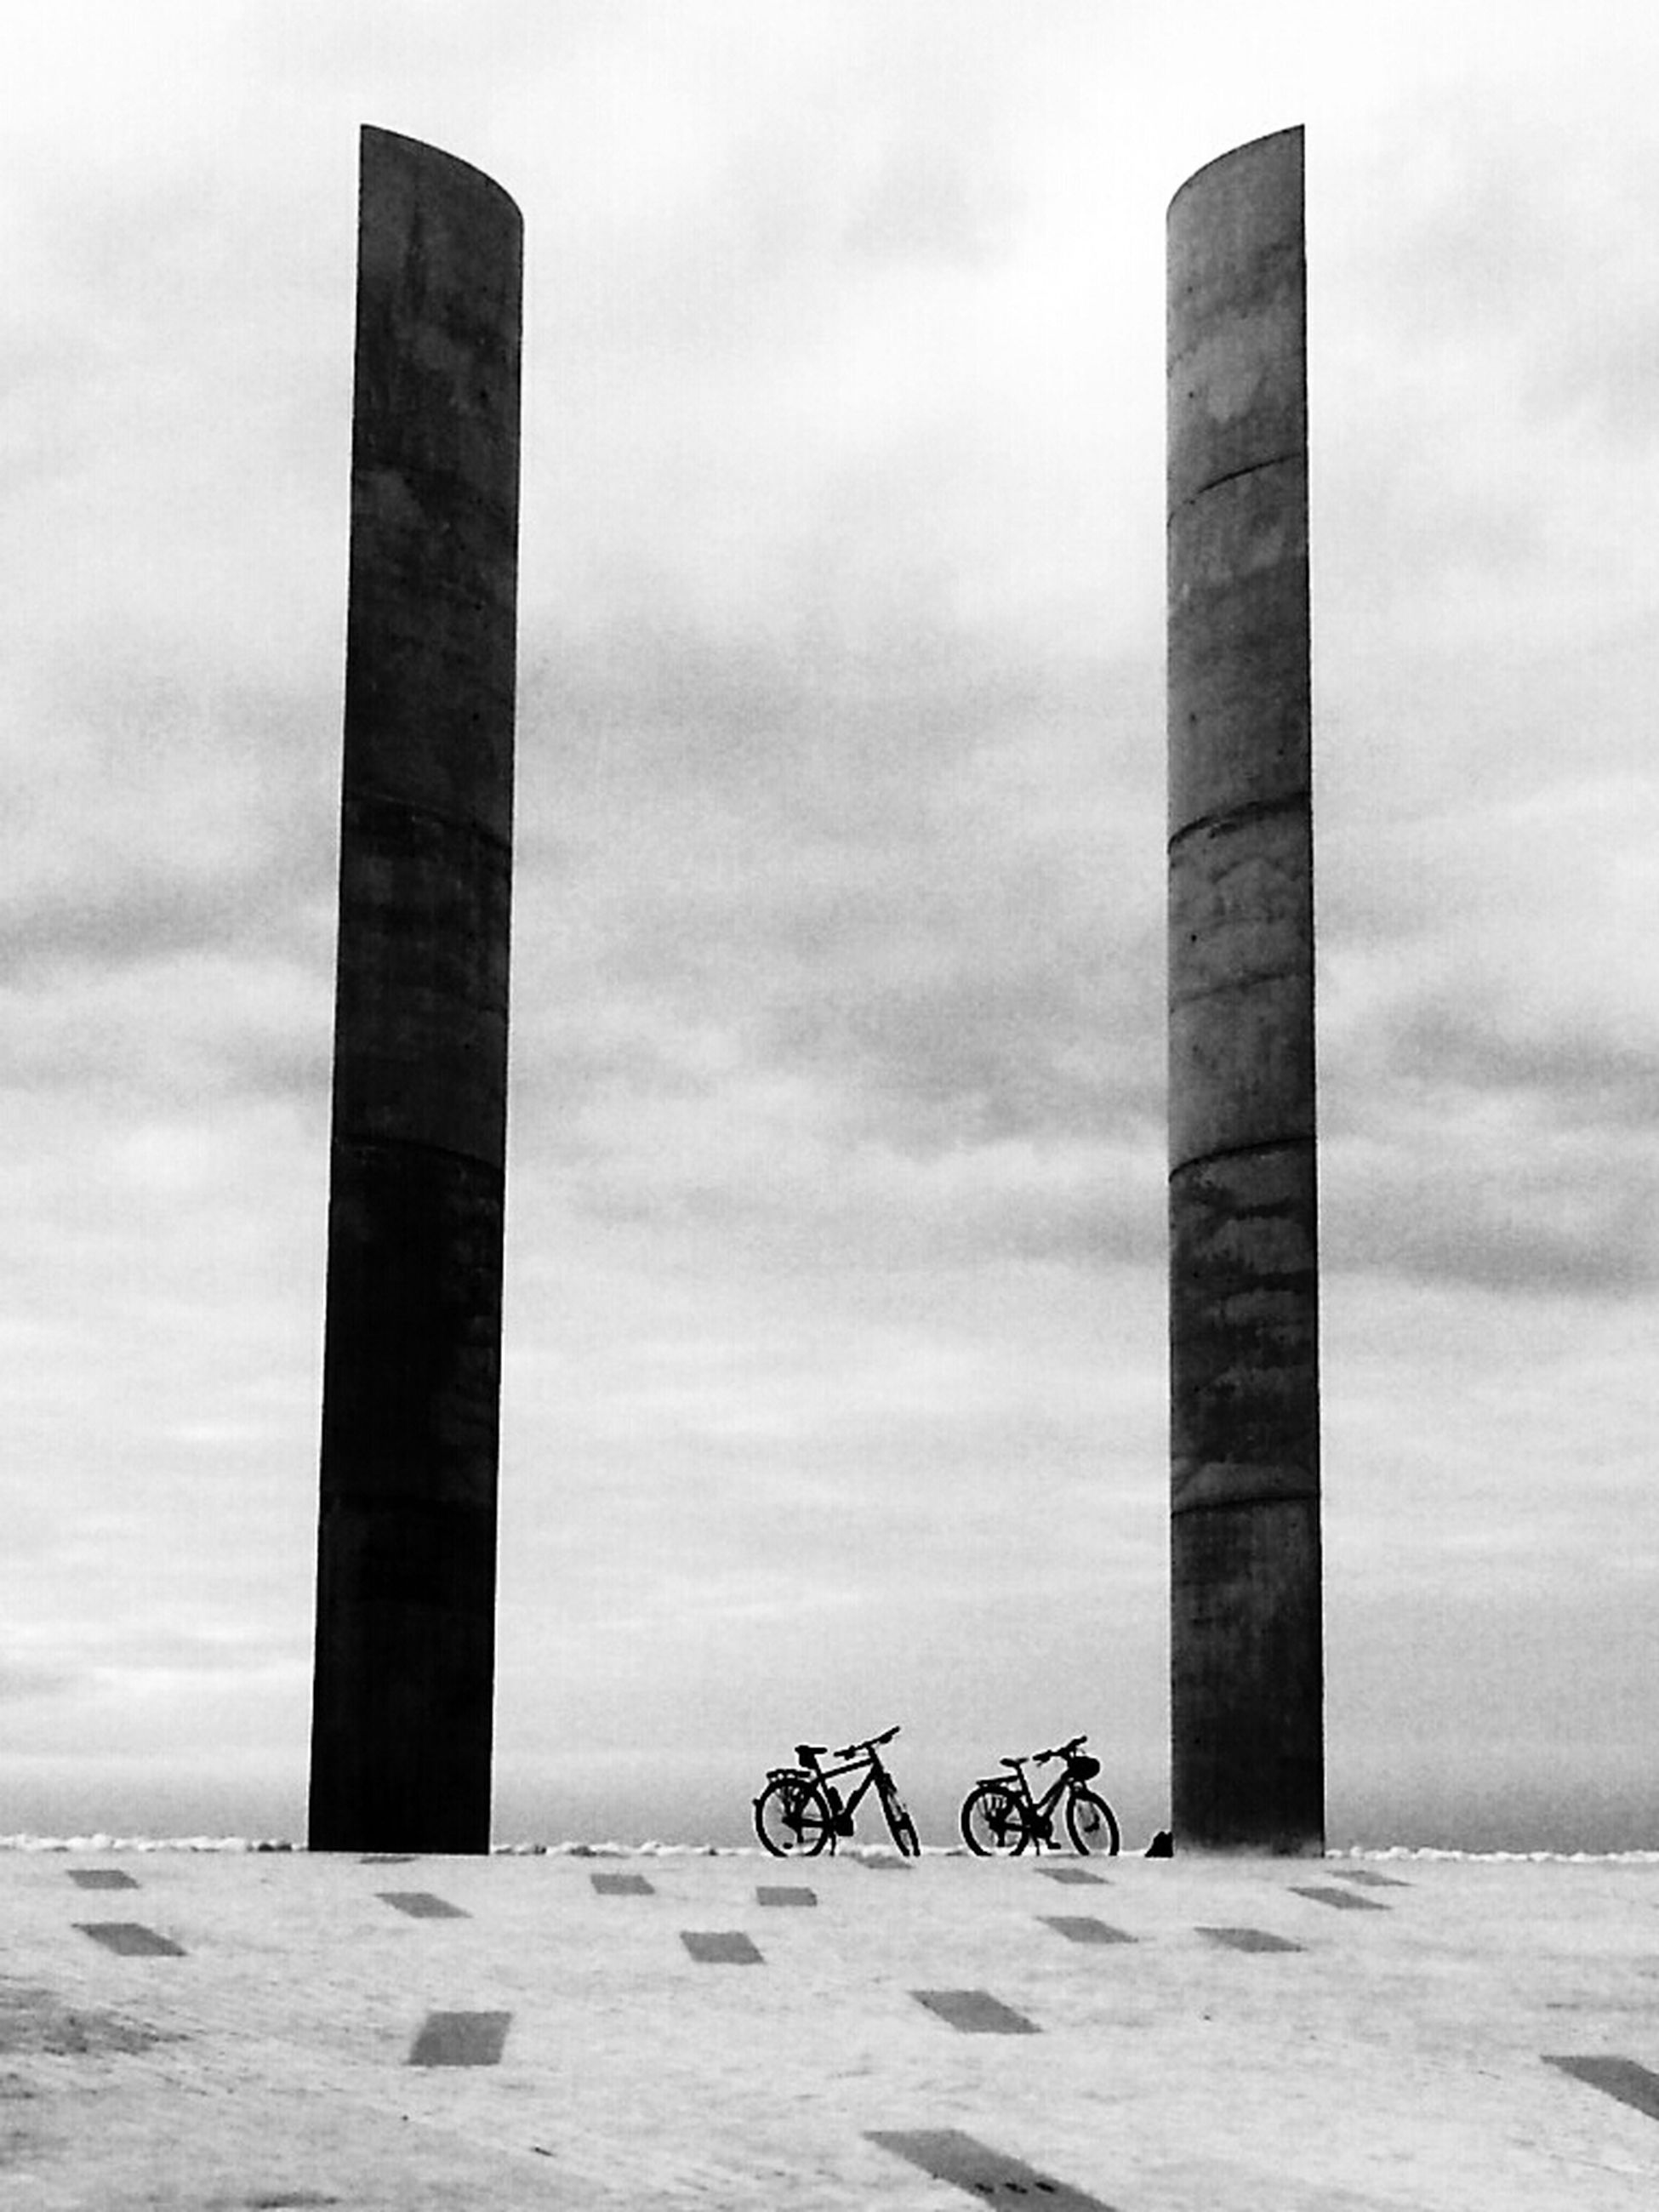 sky, cloud - sky, beach, built structure, architecture, day, sea, cloudy, outdoors, sand, cloud, tranquility, pole, wood - material, building exterior, nature, shore, protection, bicycle, weather